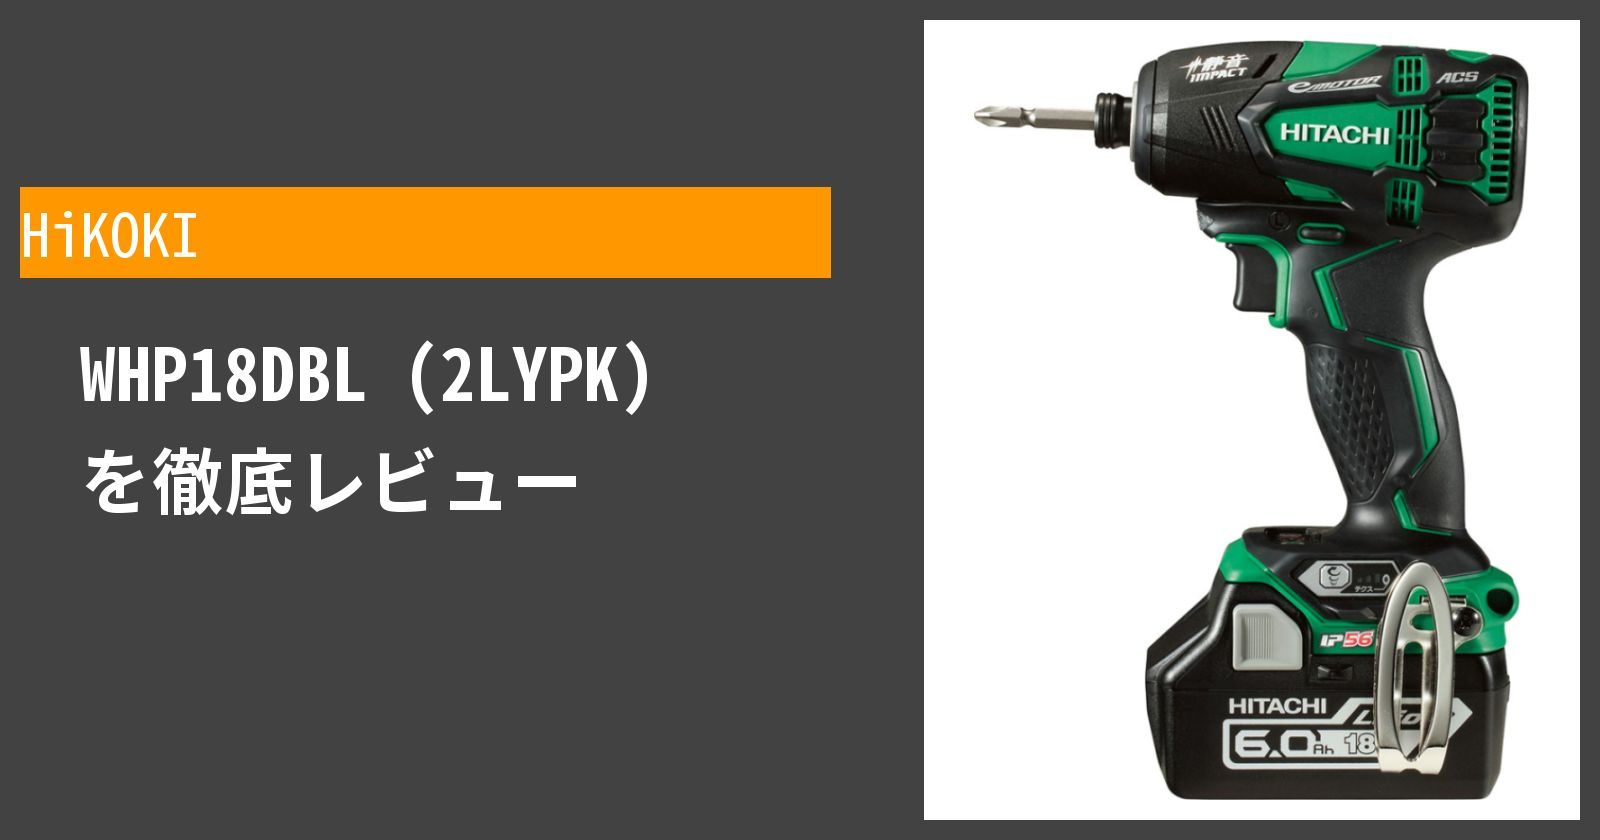 WHP18DBL (2LYPK)を徹底評価